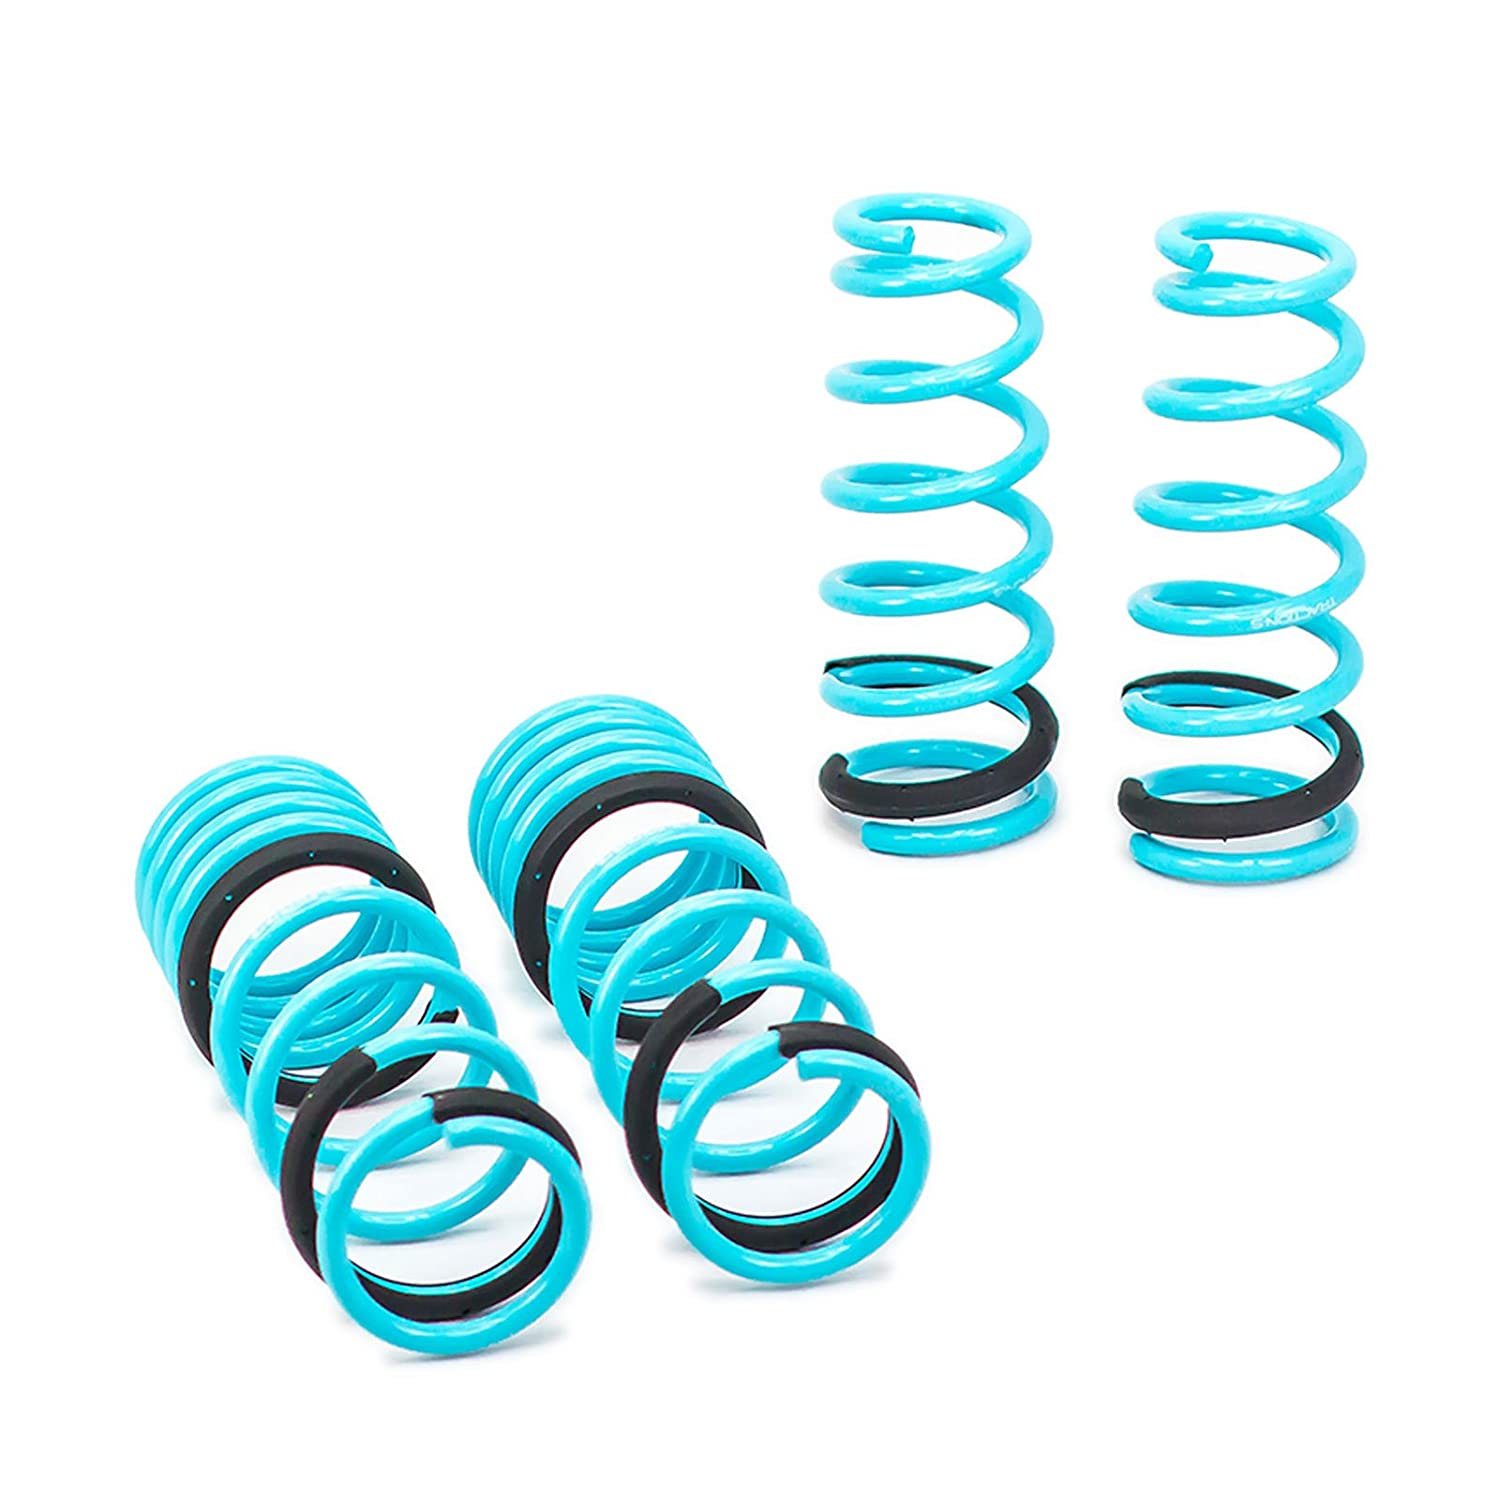 Godspeed LS-TS-HA-0003-B Traction-S Performance Lowering Springs Set of 4 Reduce Body Roll Improved Handling